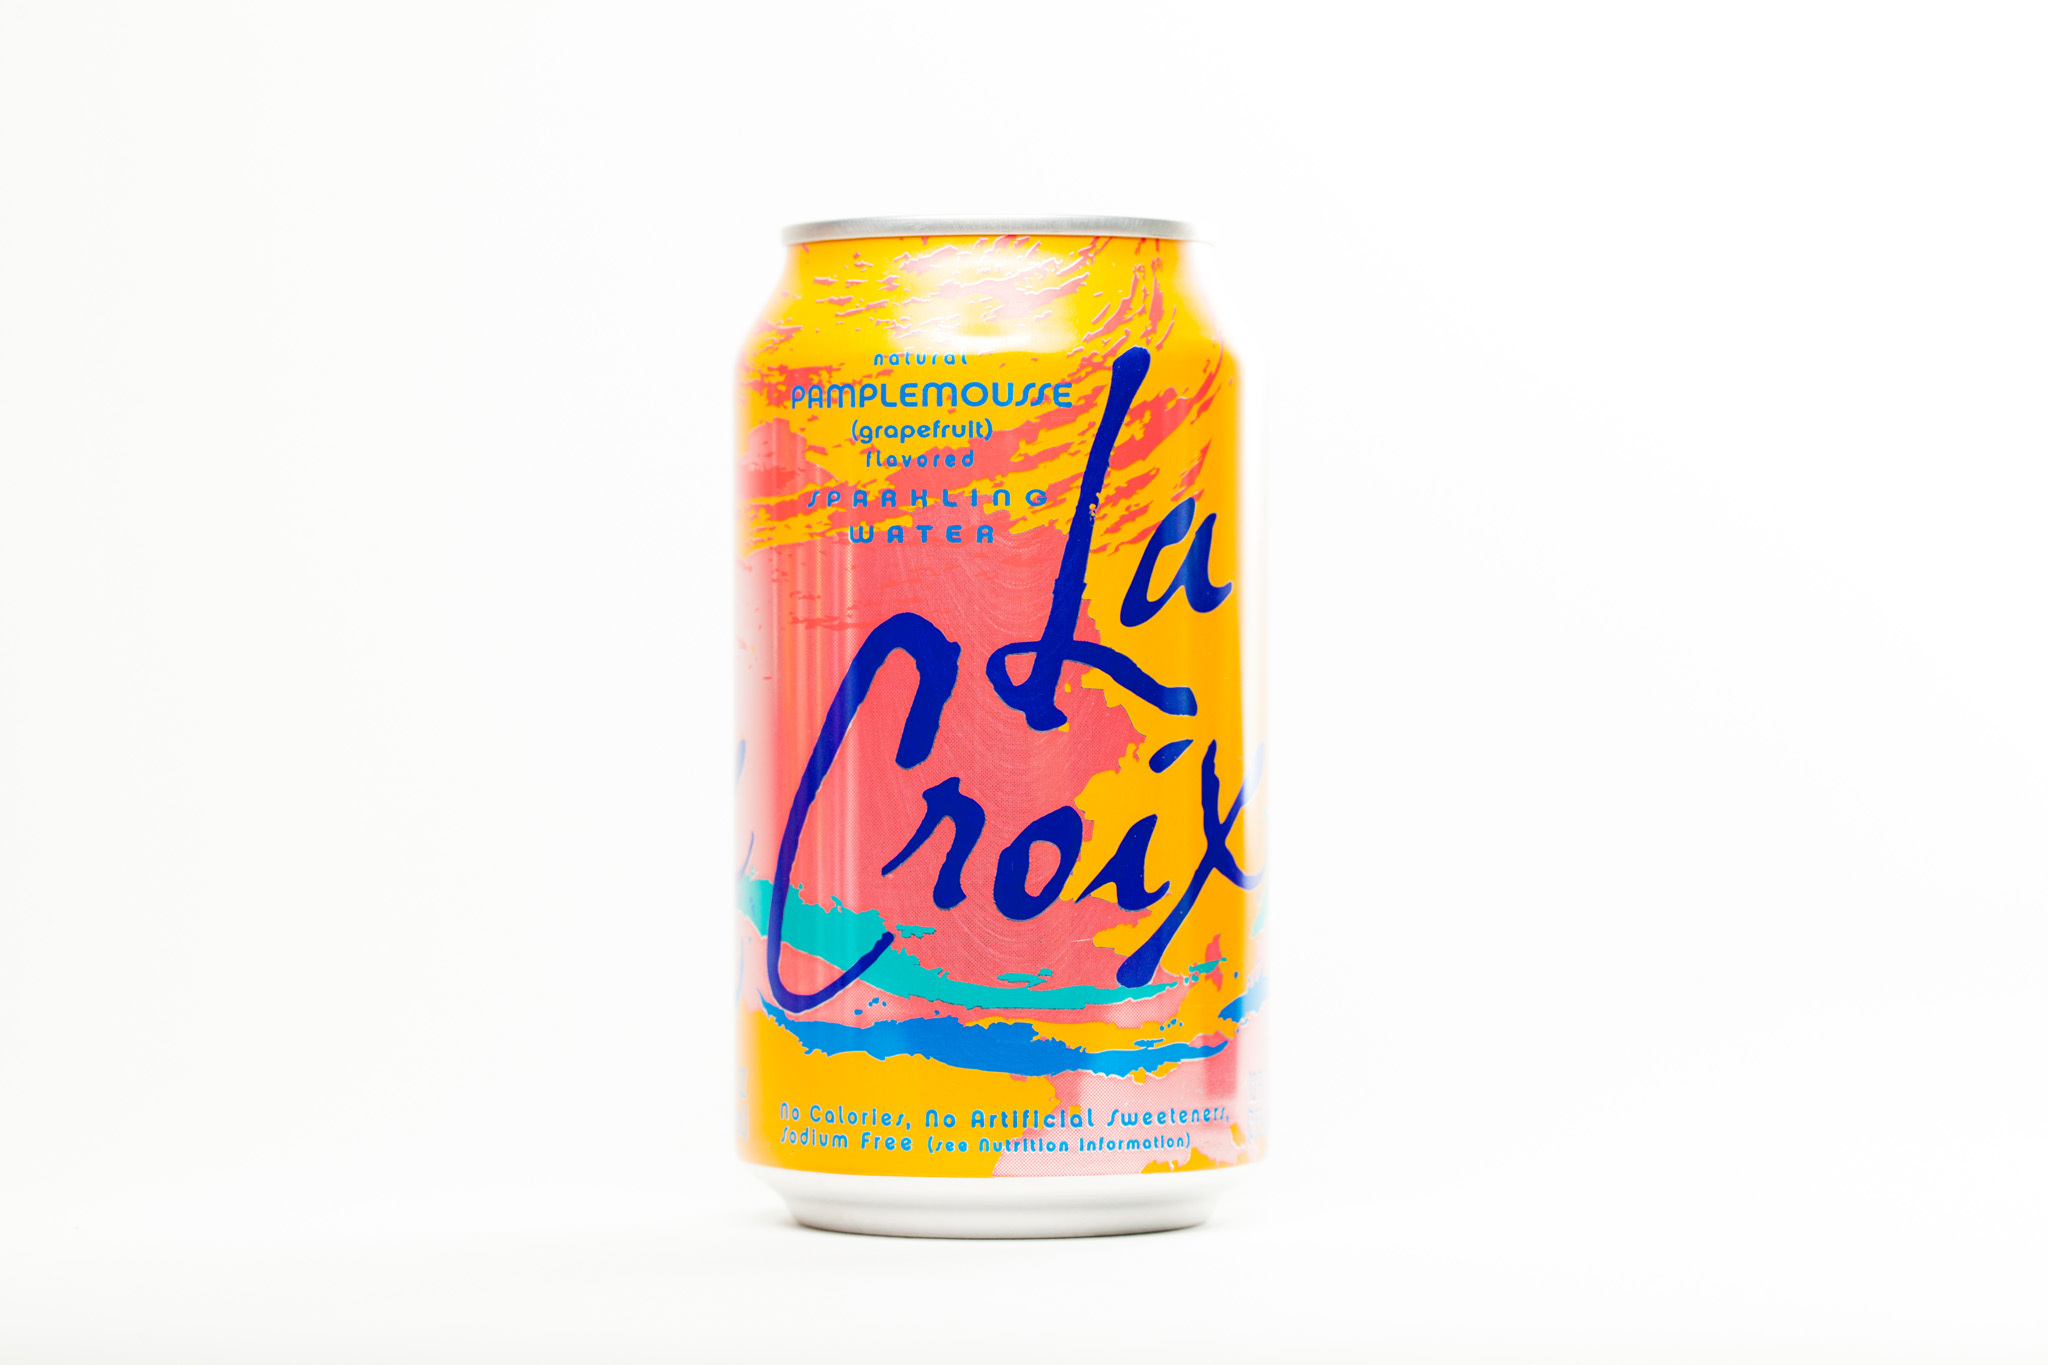 17 La Croix Sparkling Water Flavors Ranked From Best to Worst 2048x1365